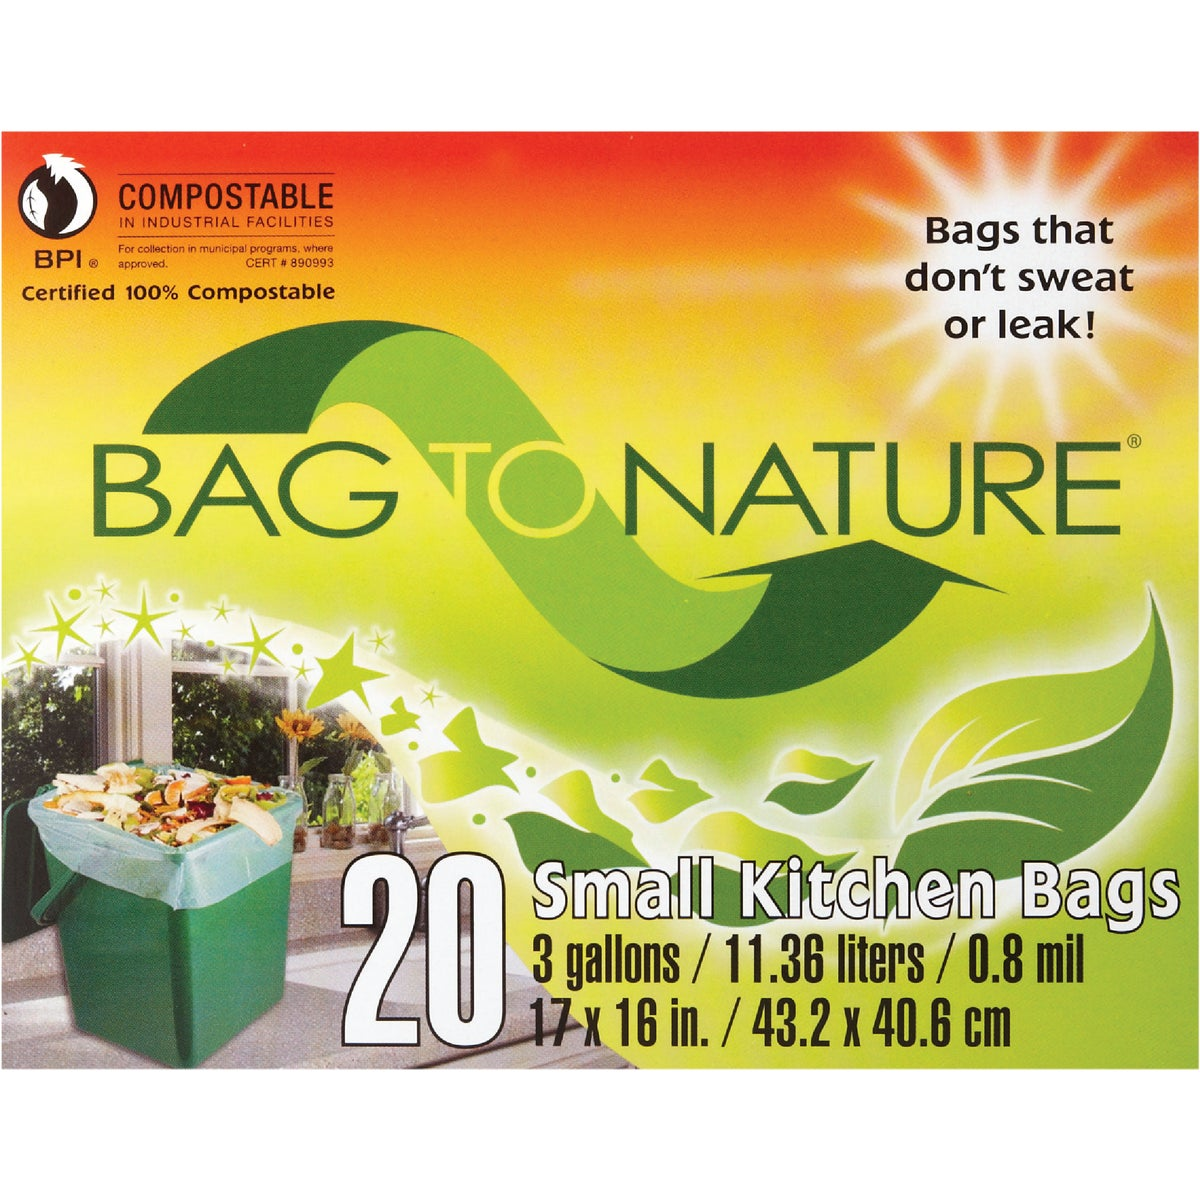 3GAL/20CT MINI TRASH BAG - 41201 by Indaco Manufacturing